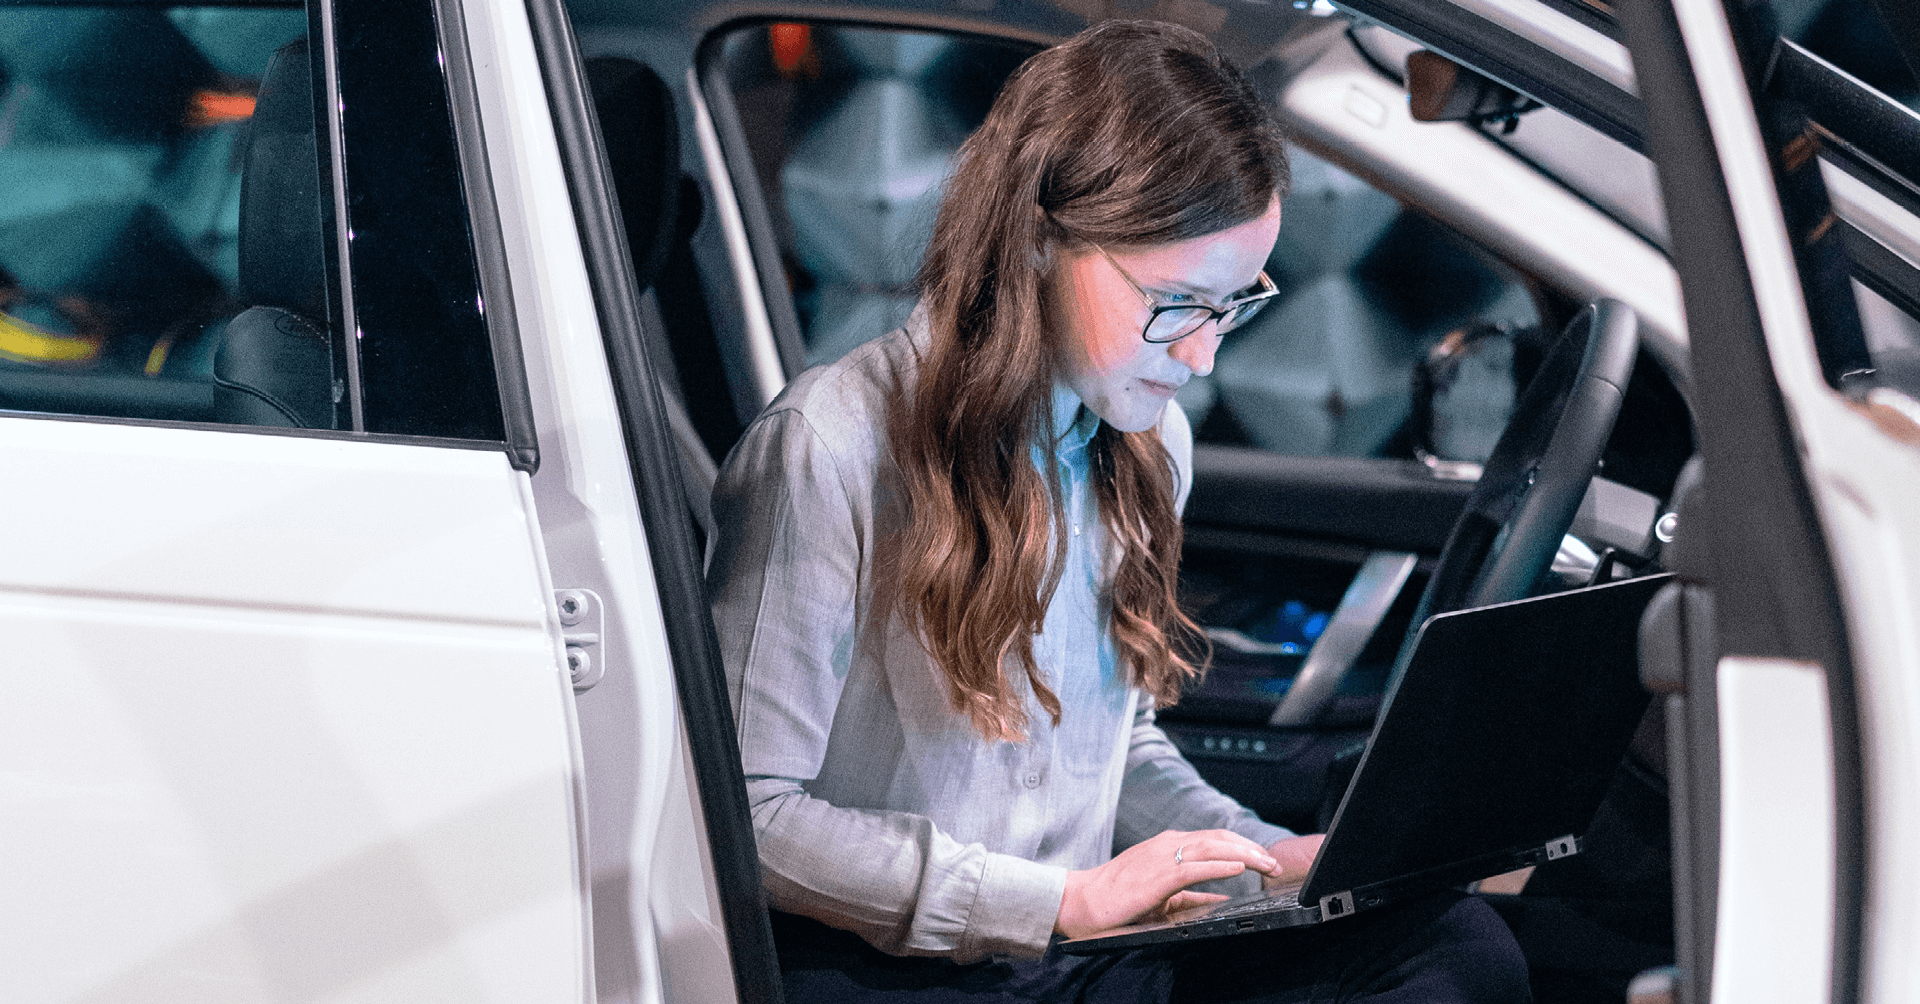 Does Your Dealership Possess These Digital Marketing Skills?